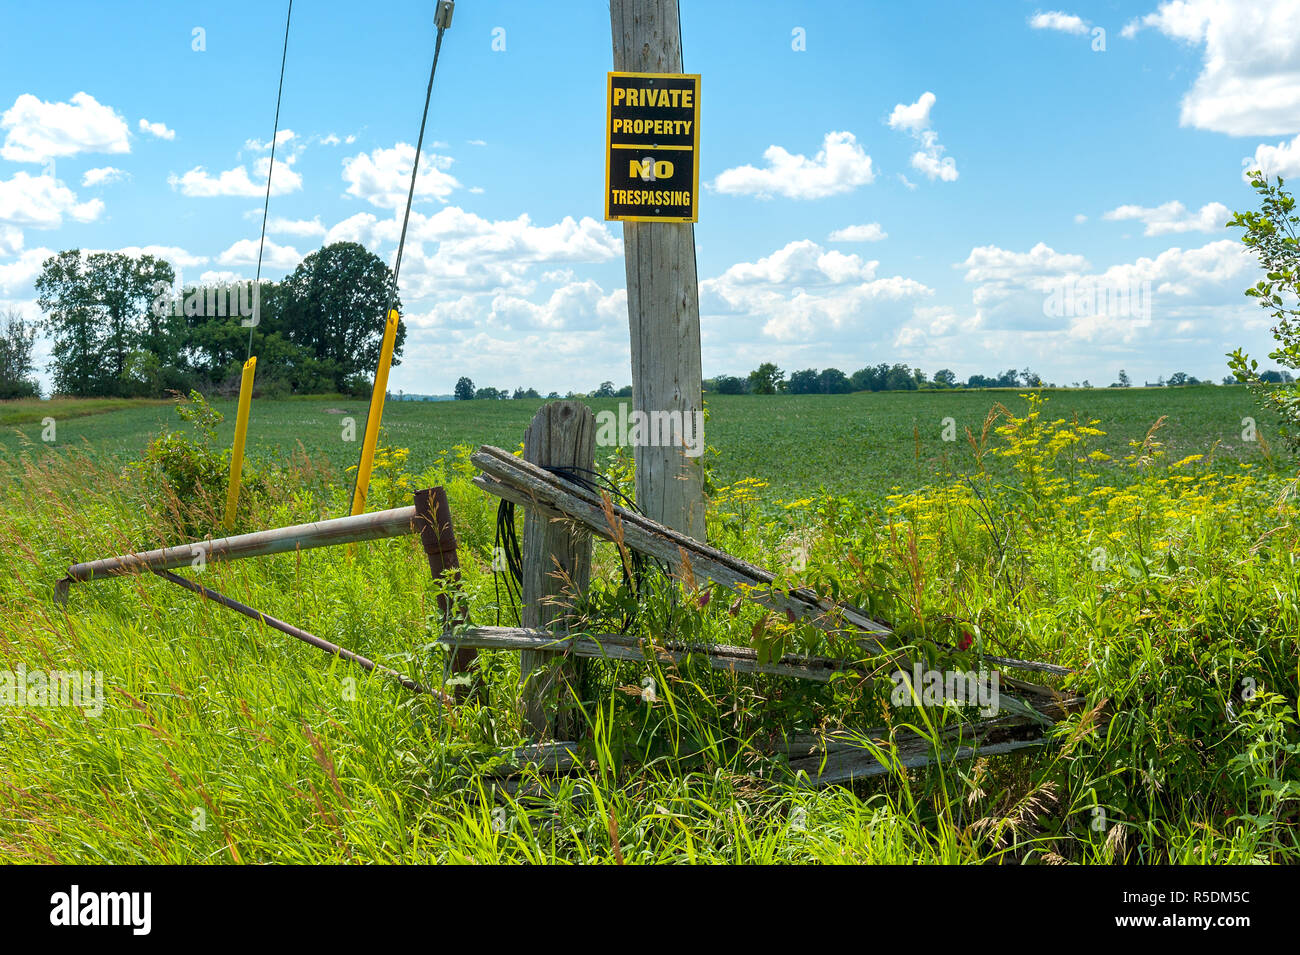 Private property sign on wooden post - Stock Image